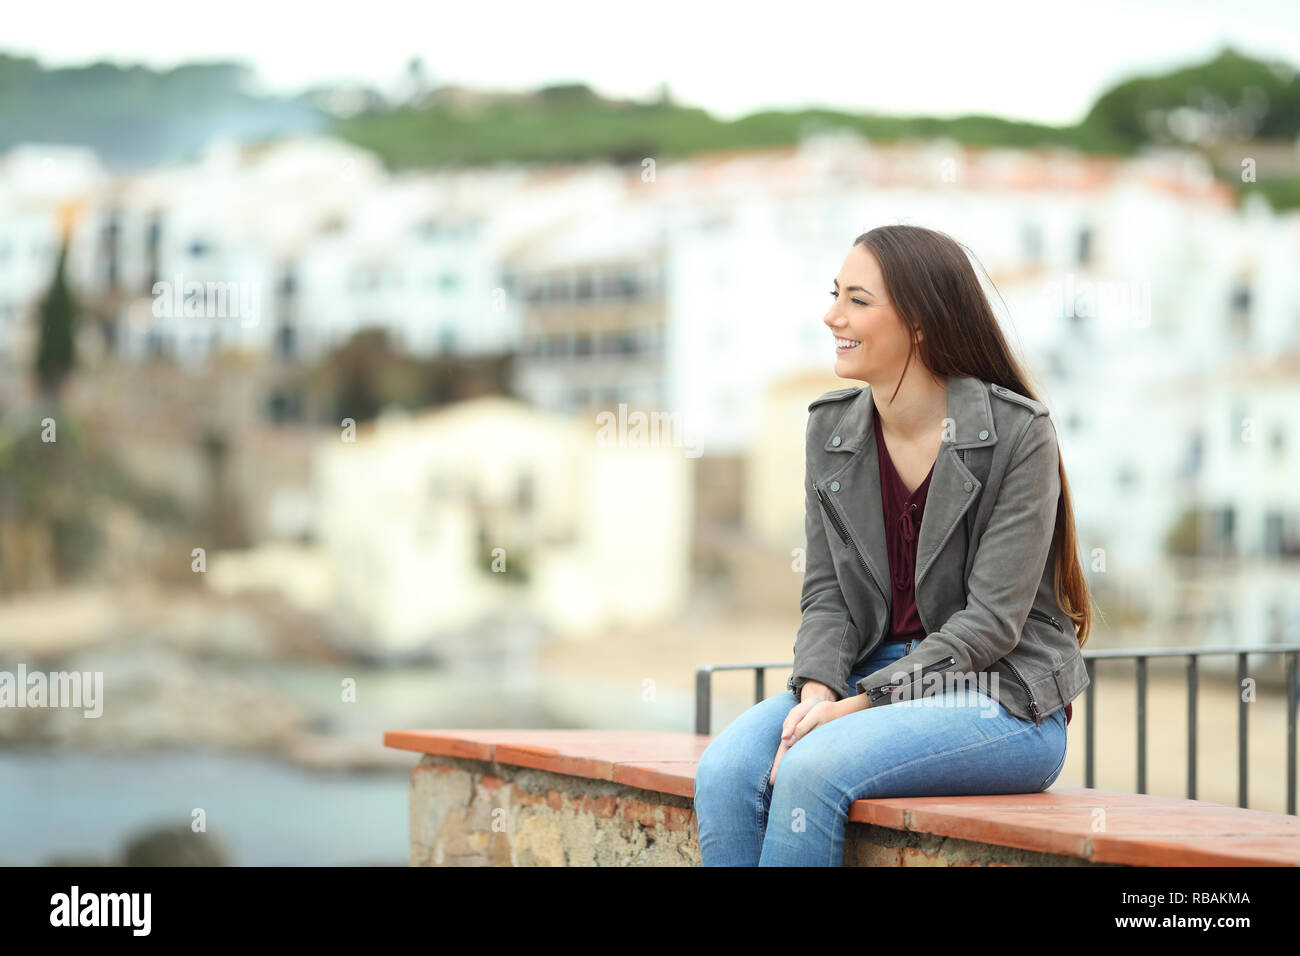 Relaxed woman contemlating views sitting on a ledge in a coast town on vacation - Stock Image